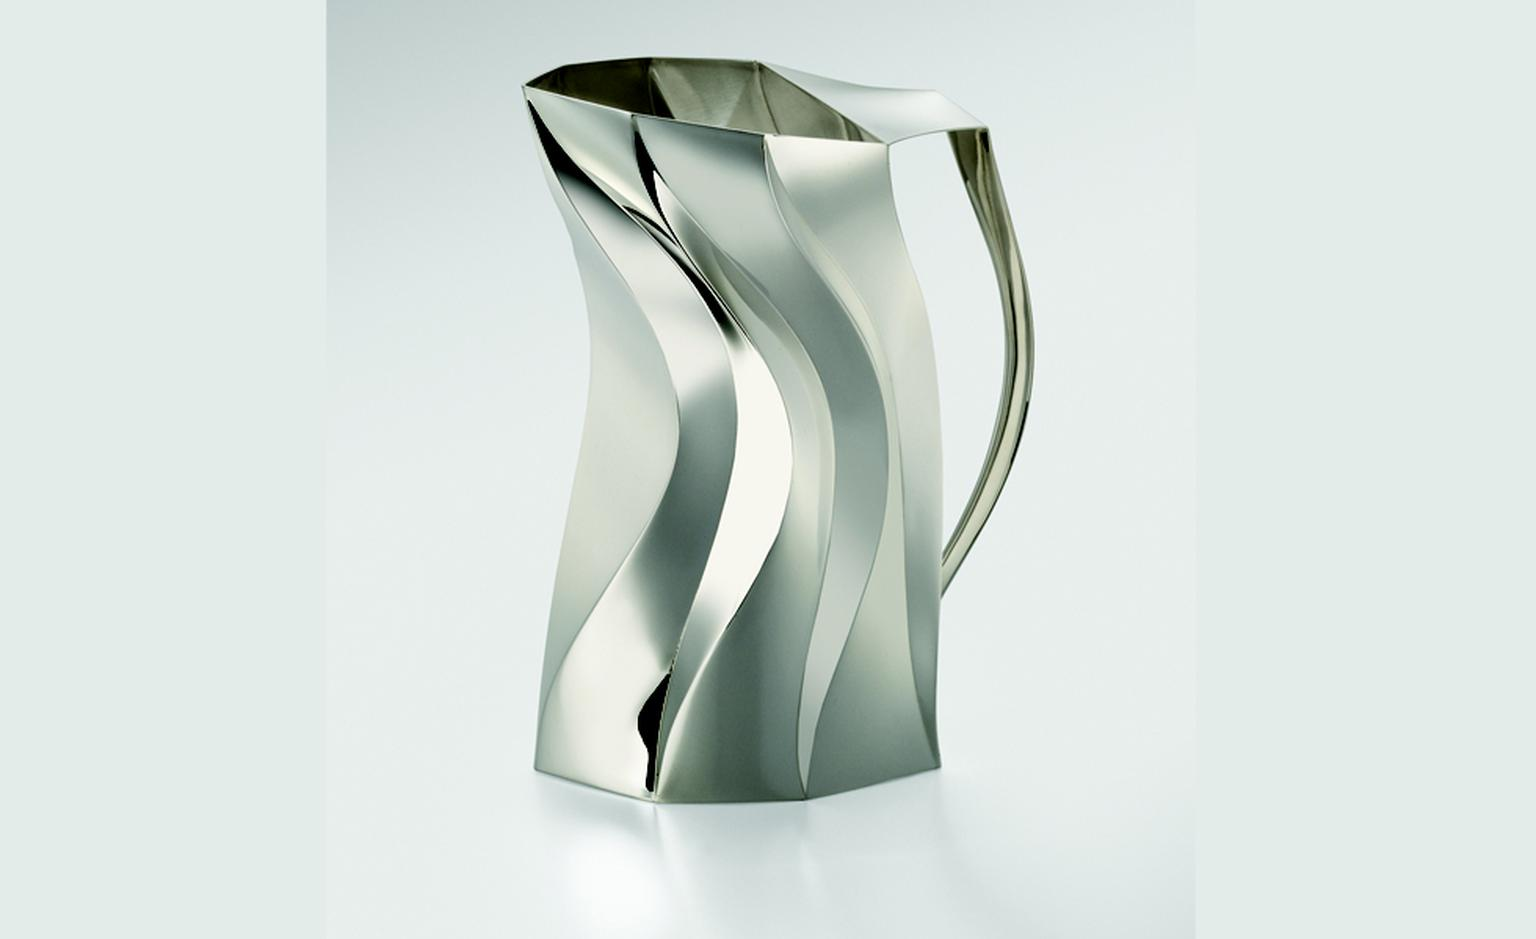 """Liner Jug"" by Toby Russell, 2010 Sterling silver - scored and folded by hand from flat sheet."